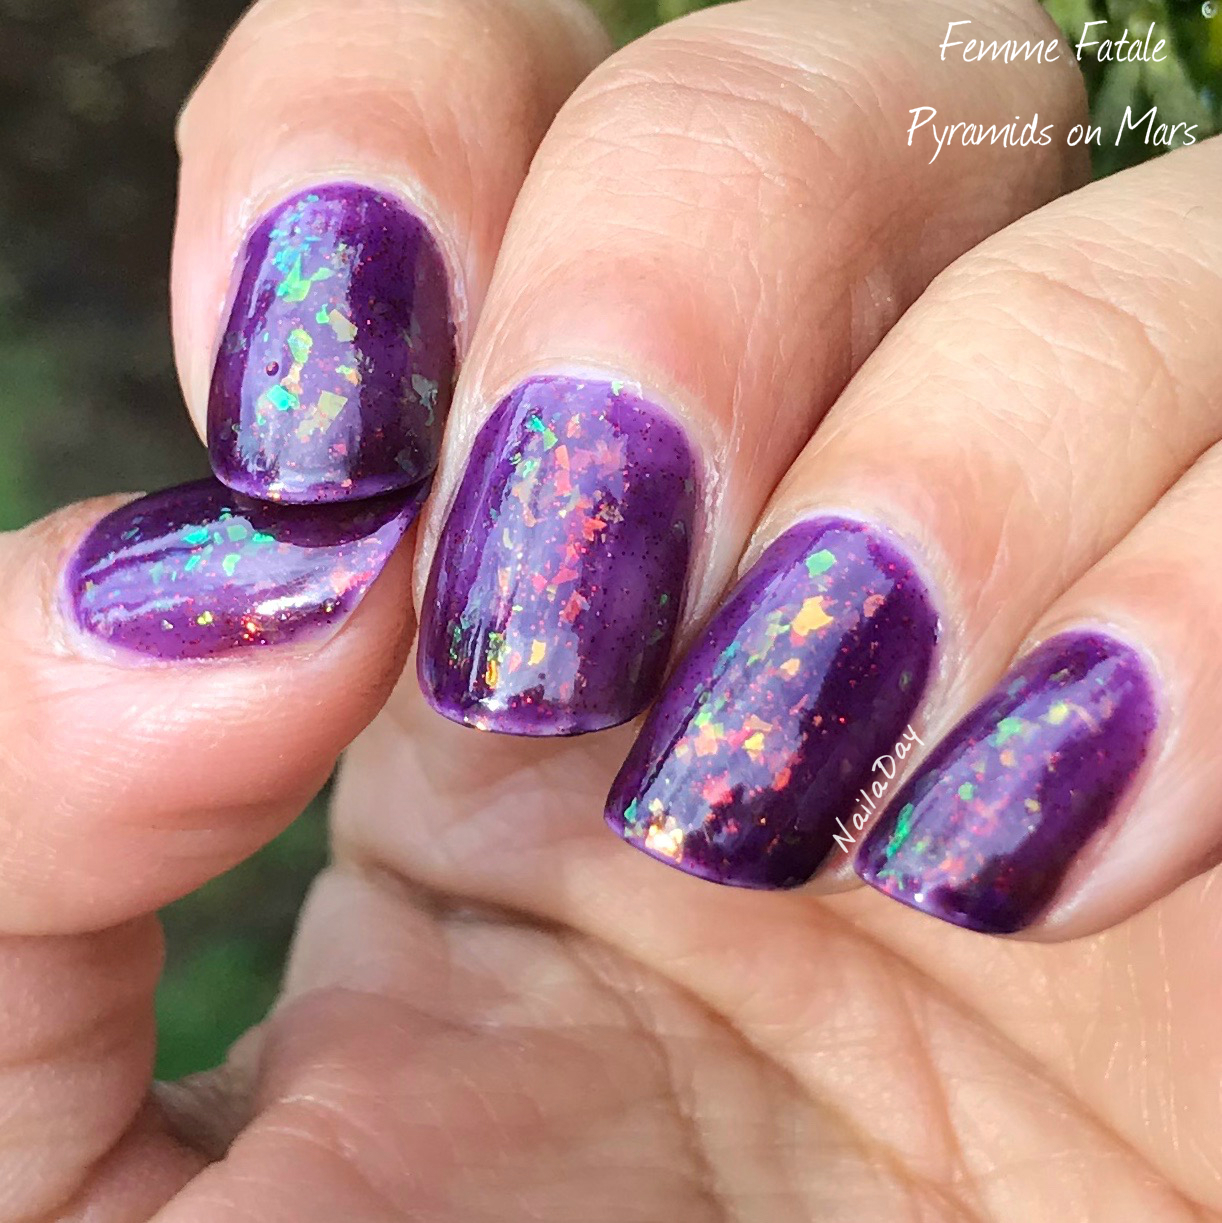 NailaDay: Femme Fatale Pyramids On Mars